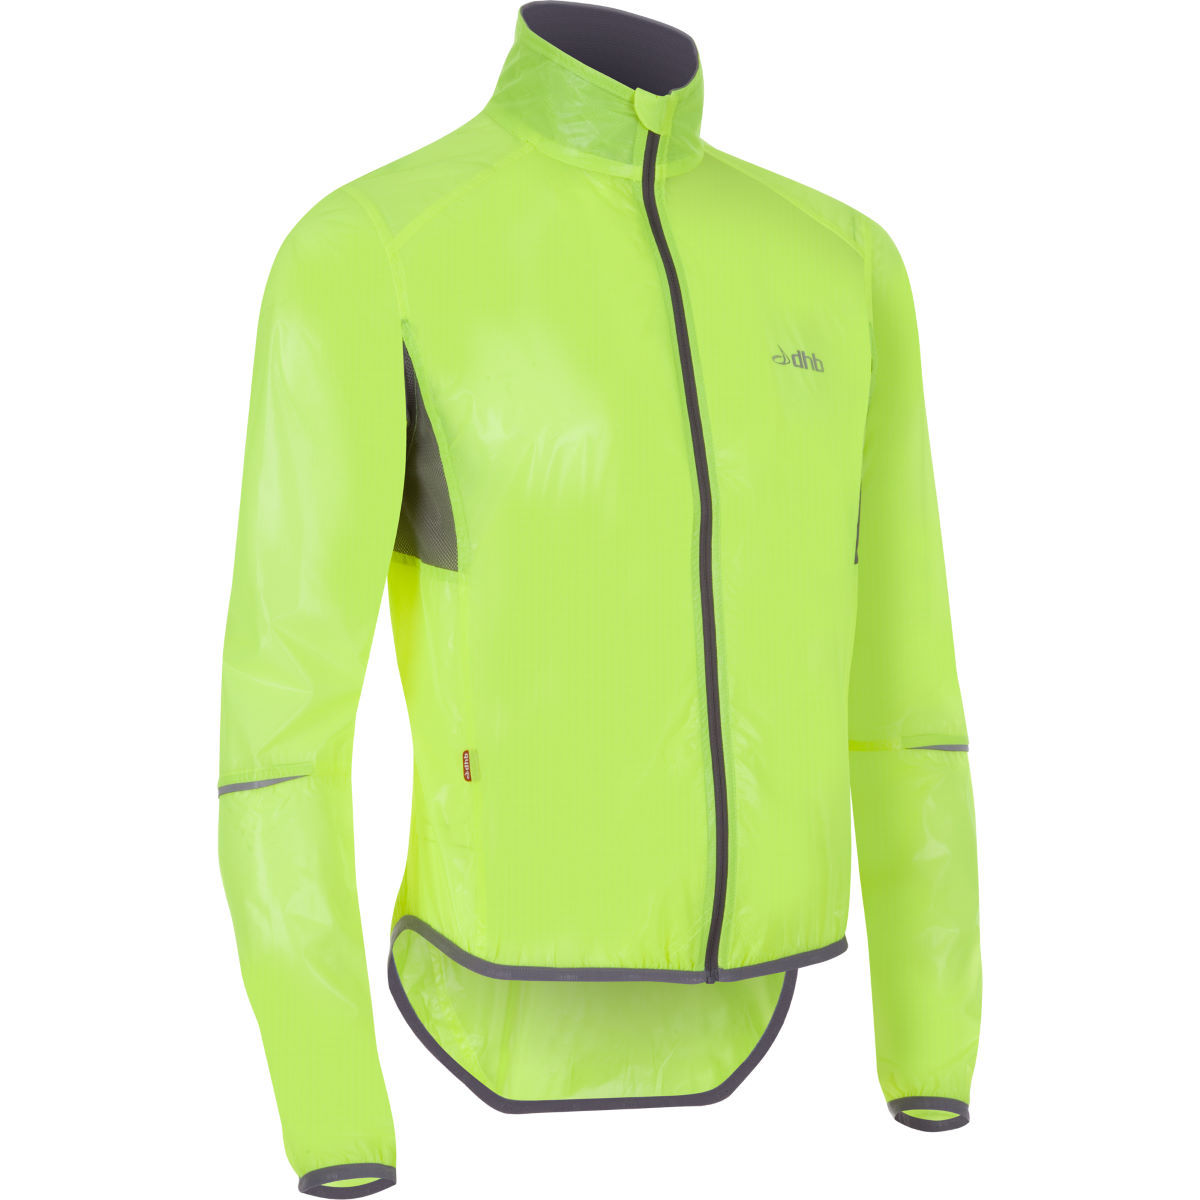 dhb Clear Fluro Race Jacket